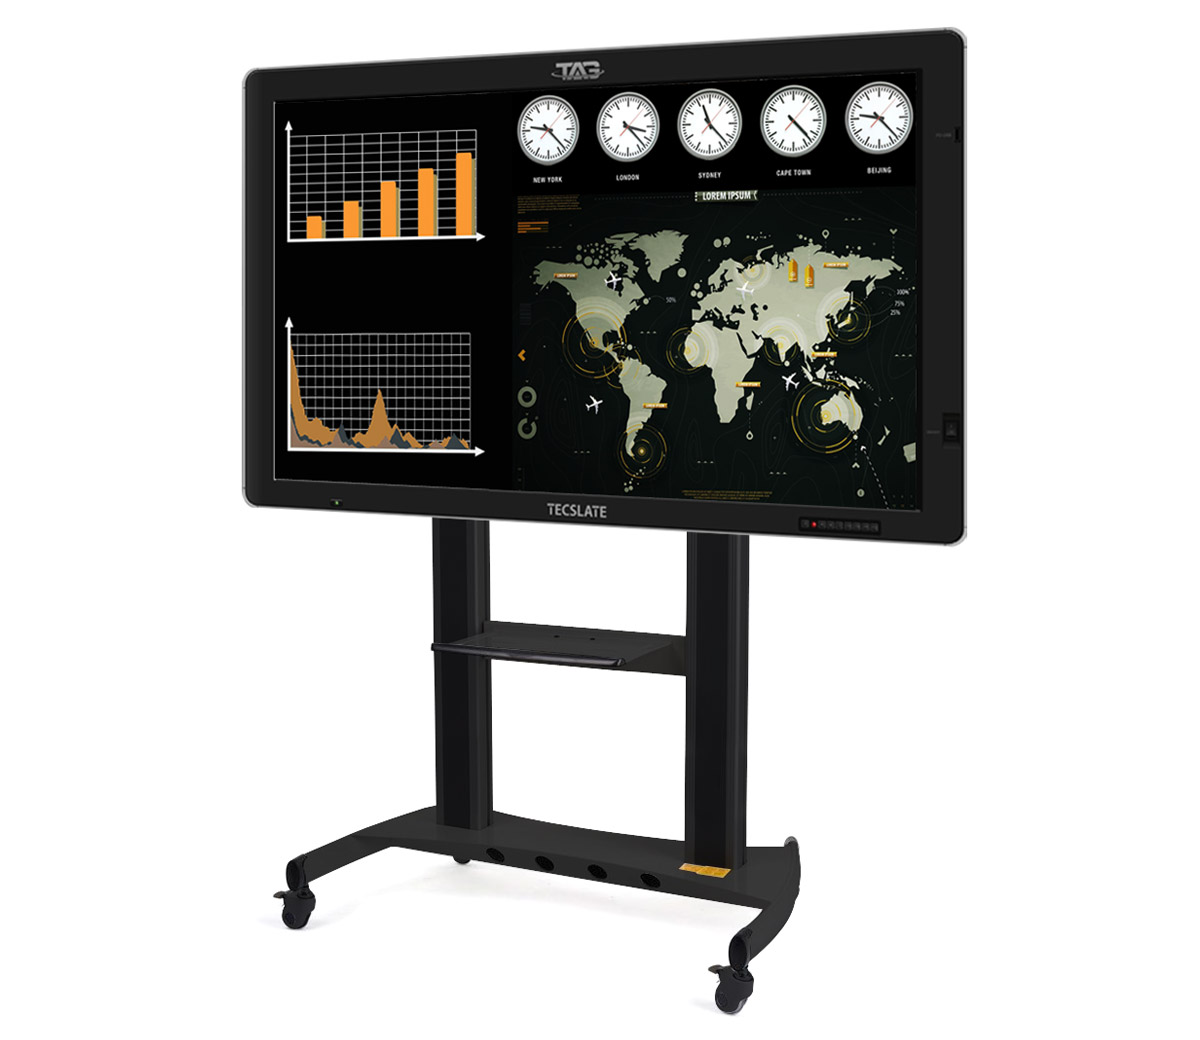 TAG Global Systems produces the TAG TECSLATE, a collaborative and interactive touchscreen computer